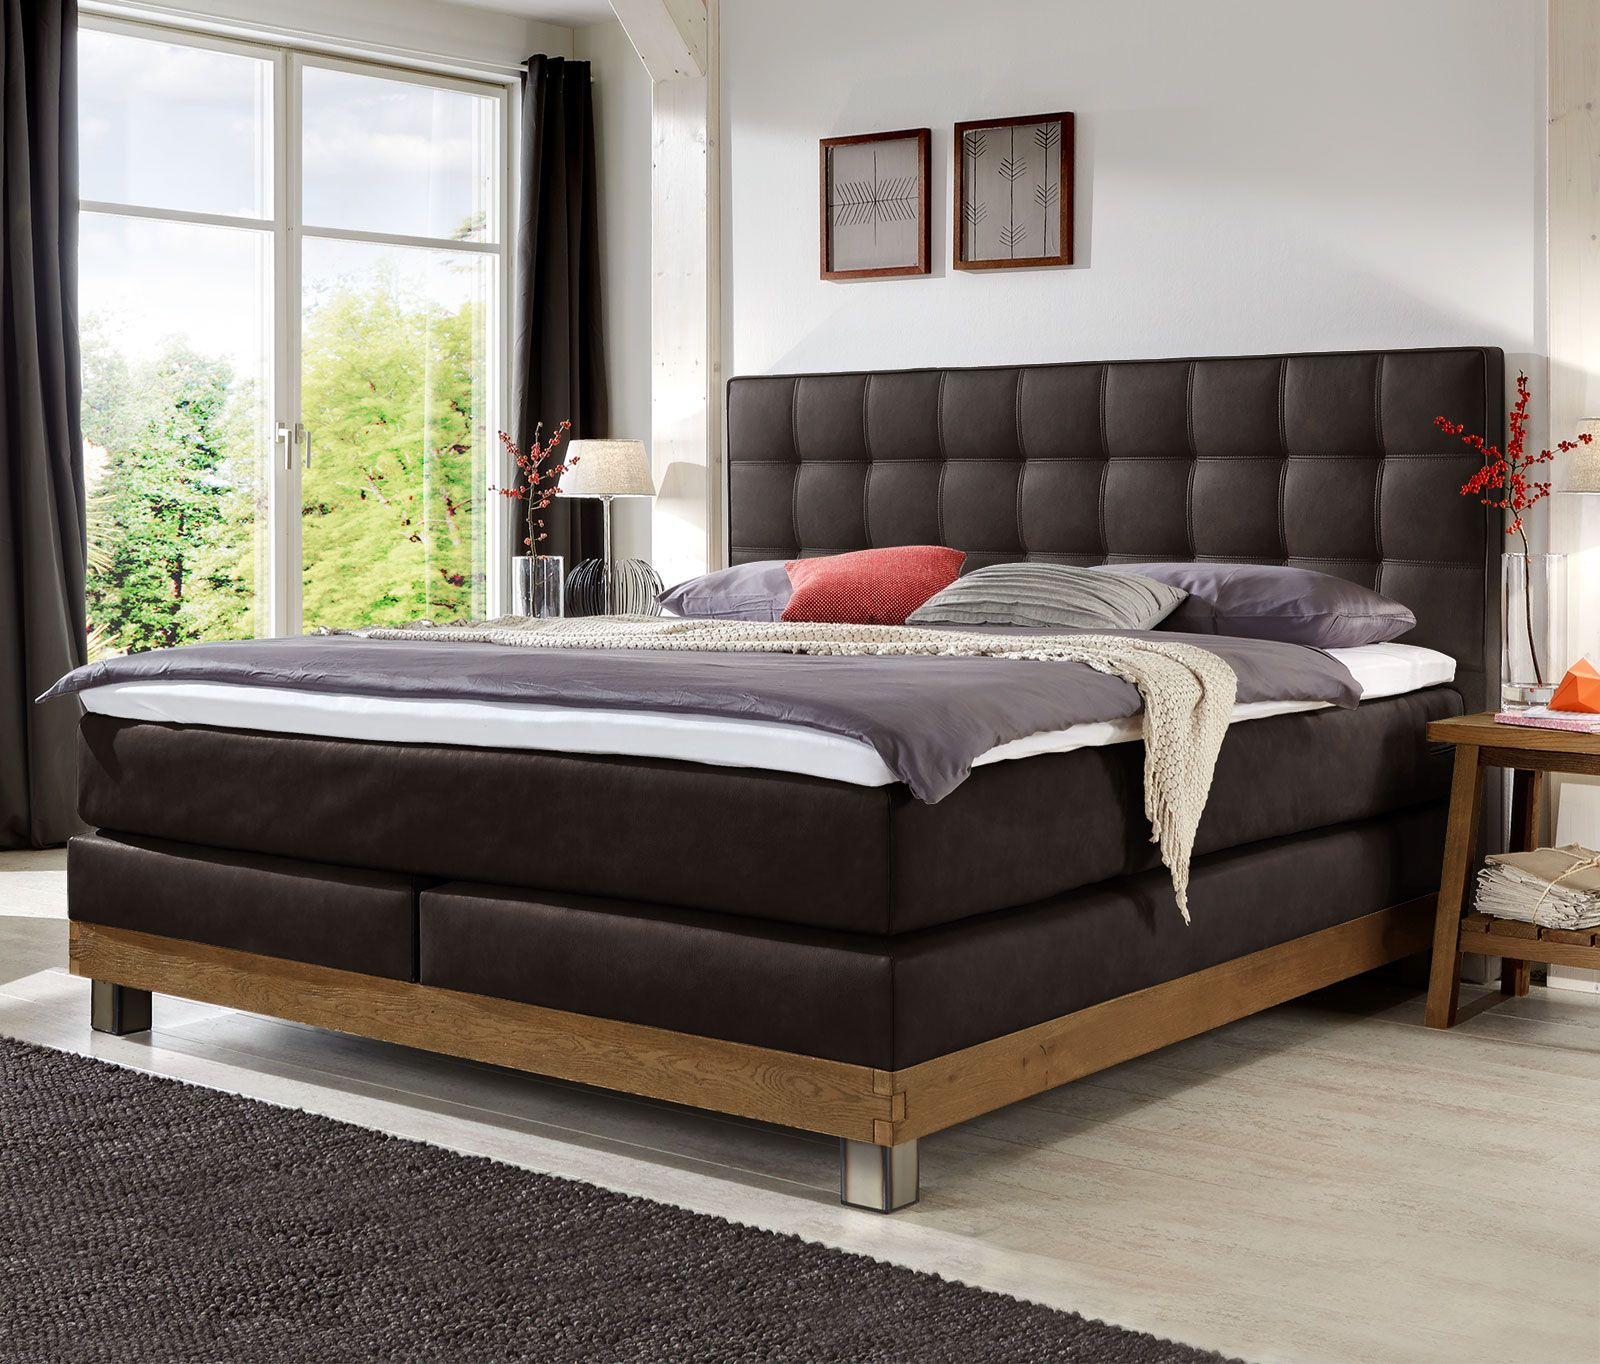 Boxspringbett Irving In 2020 Boxspringbett Schlafzimmer Design